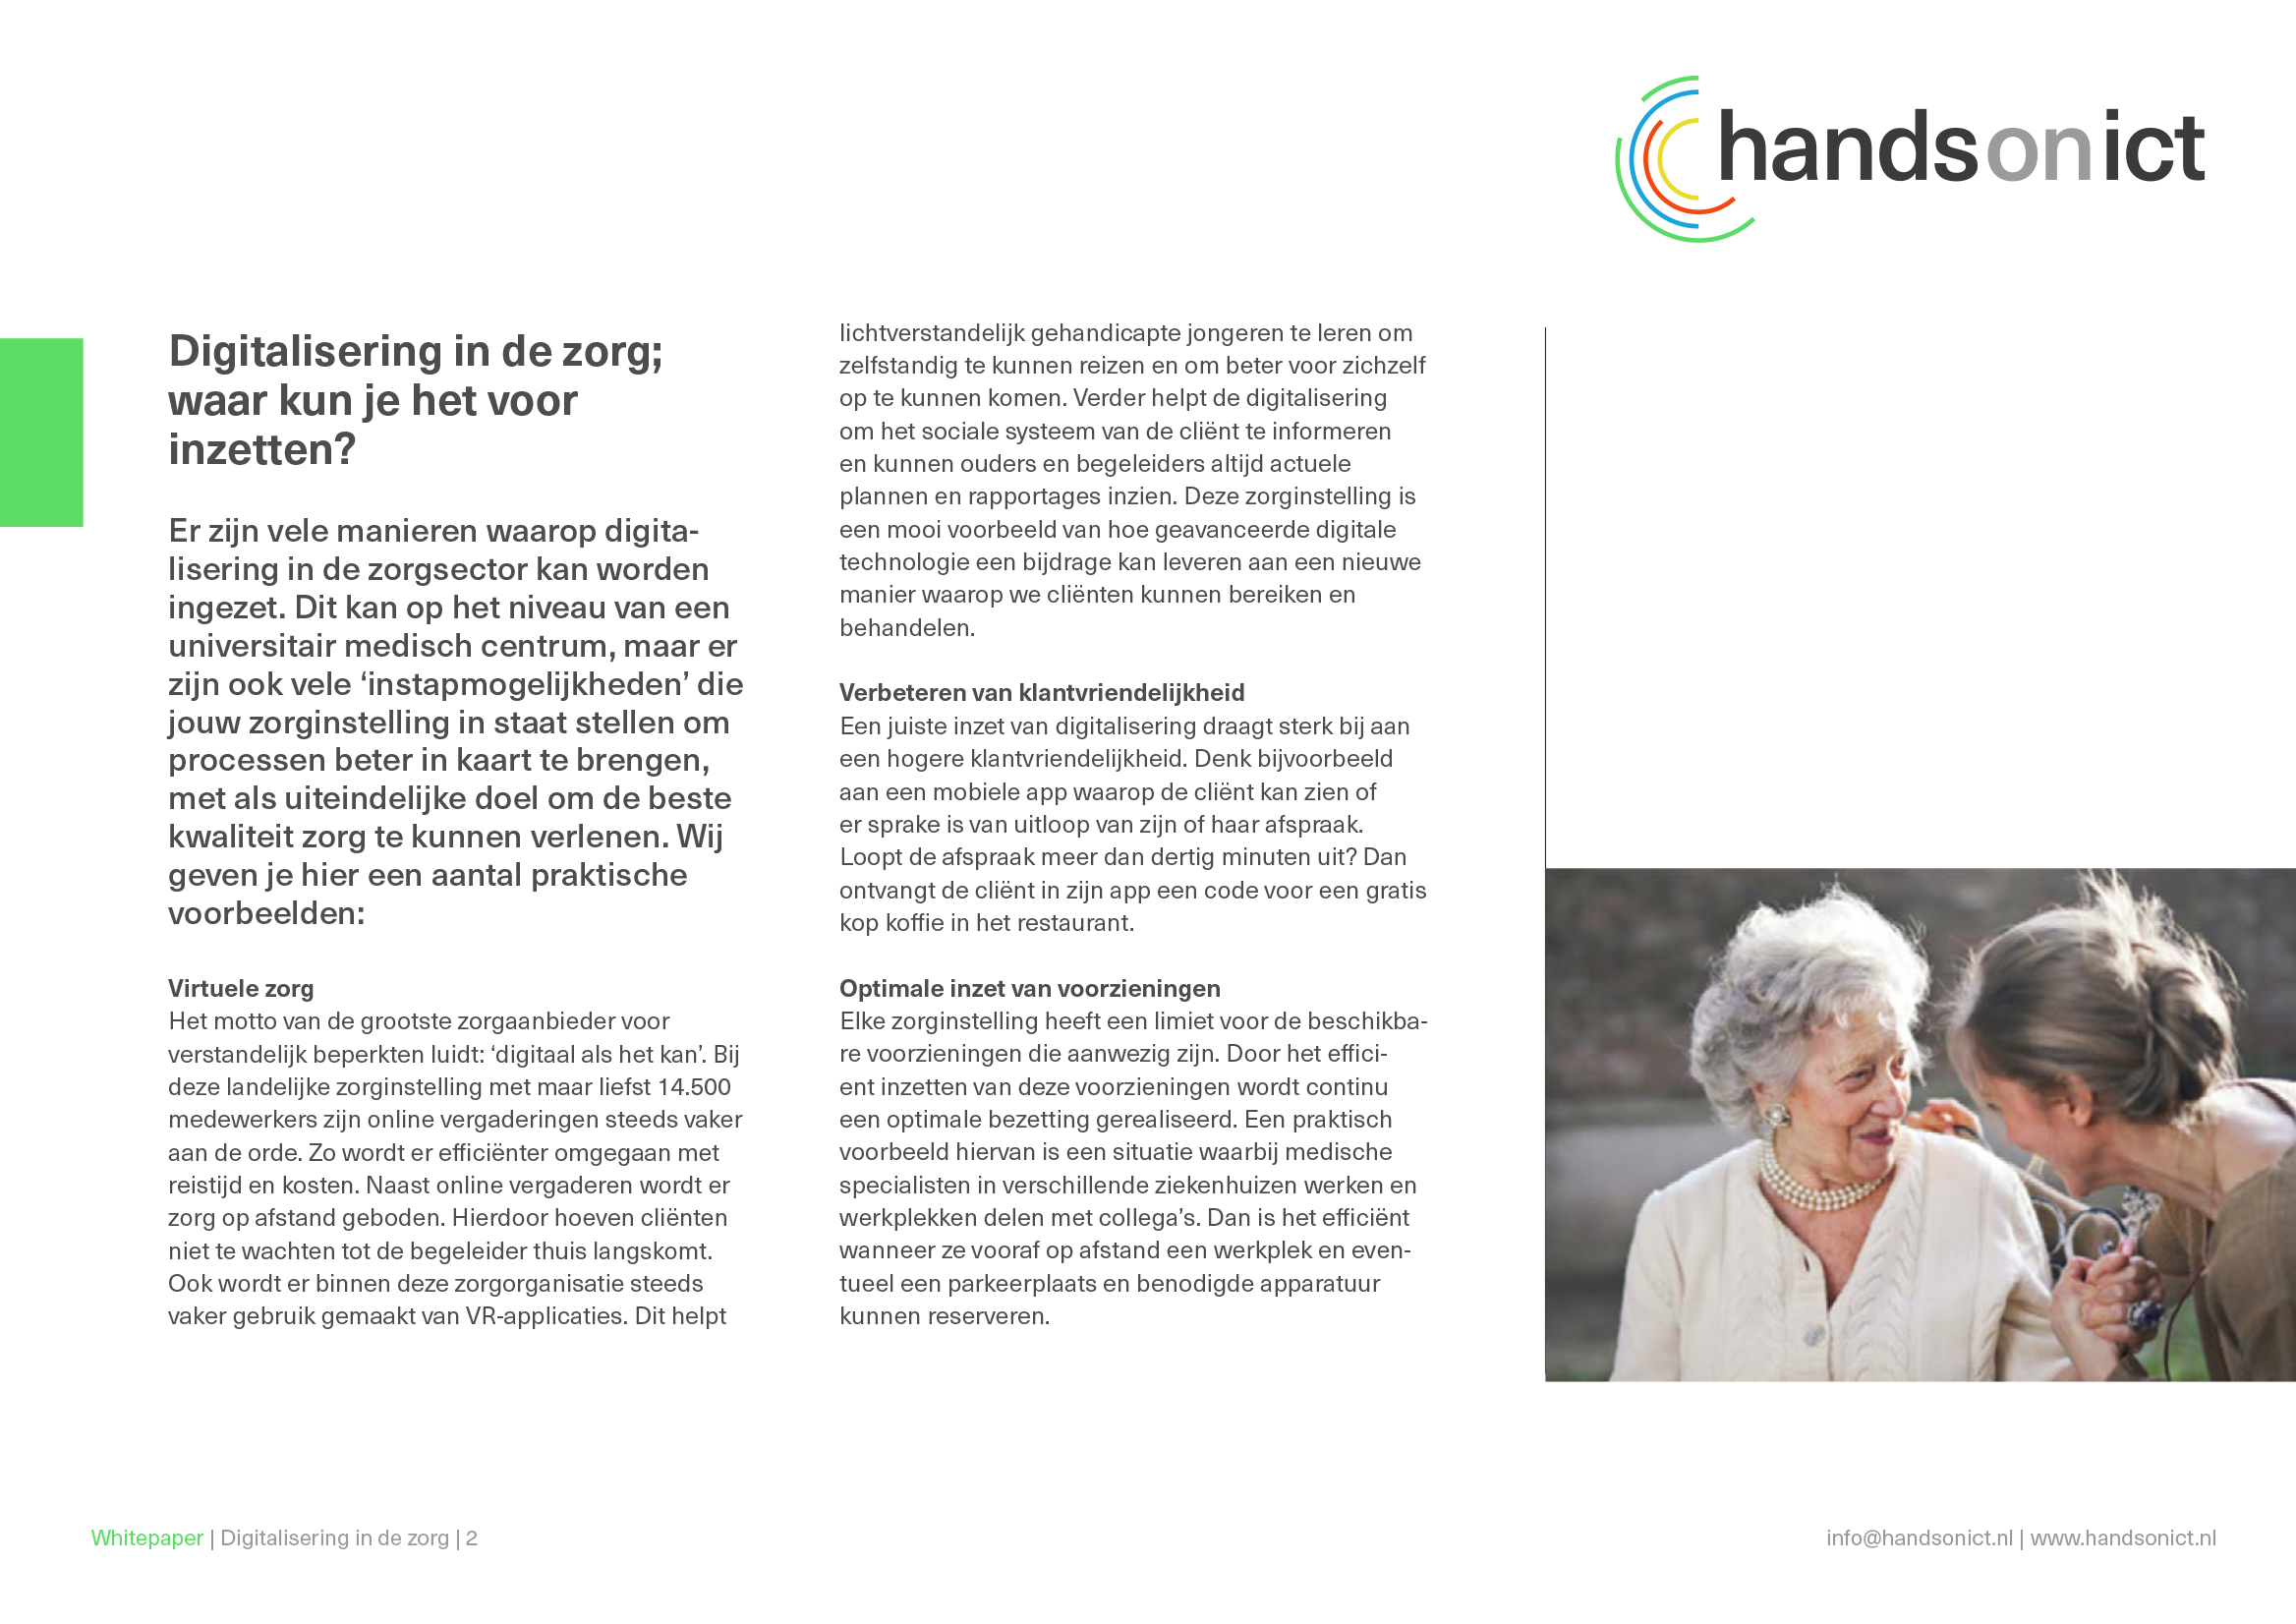 Sneak preview_2 whitepaper digitalisering in de zorg